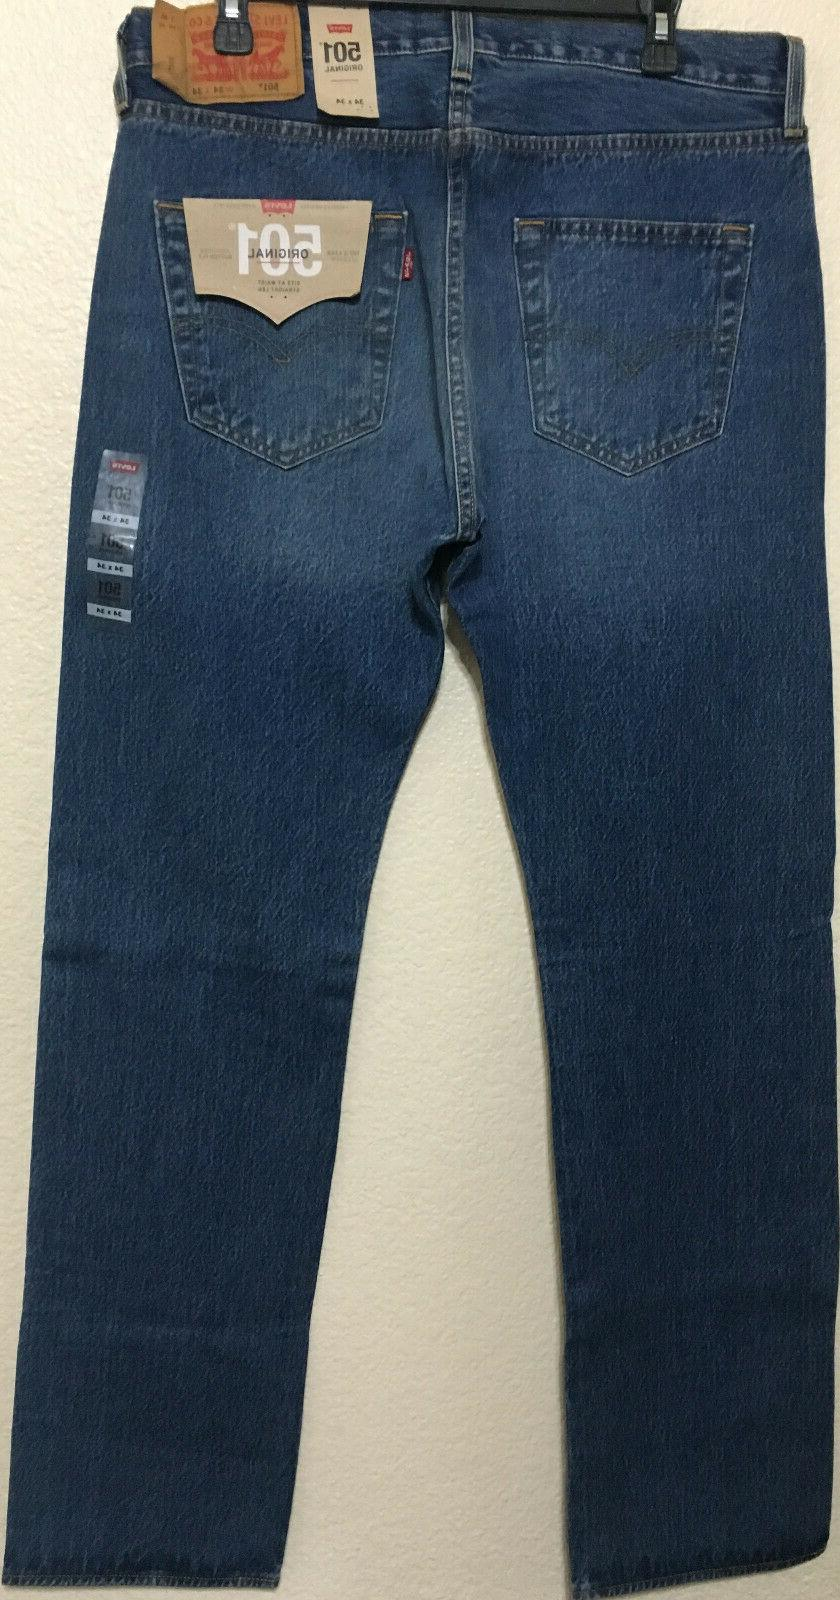 NWT MENS LEVI'S -2487 STRAIGHT BLUE $70